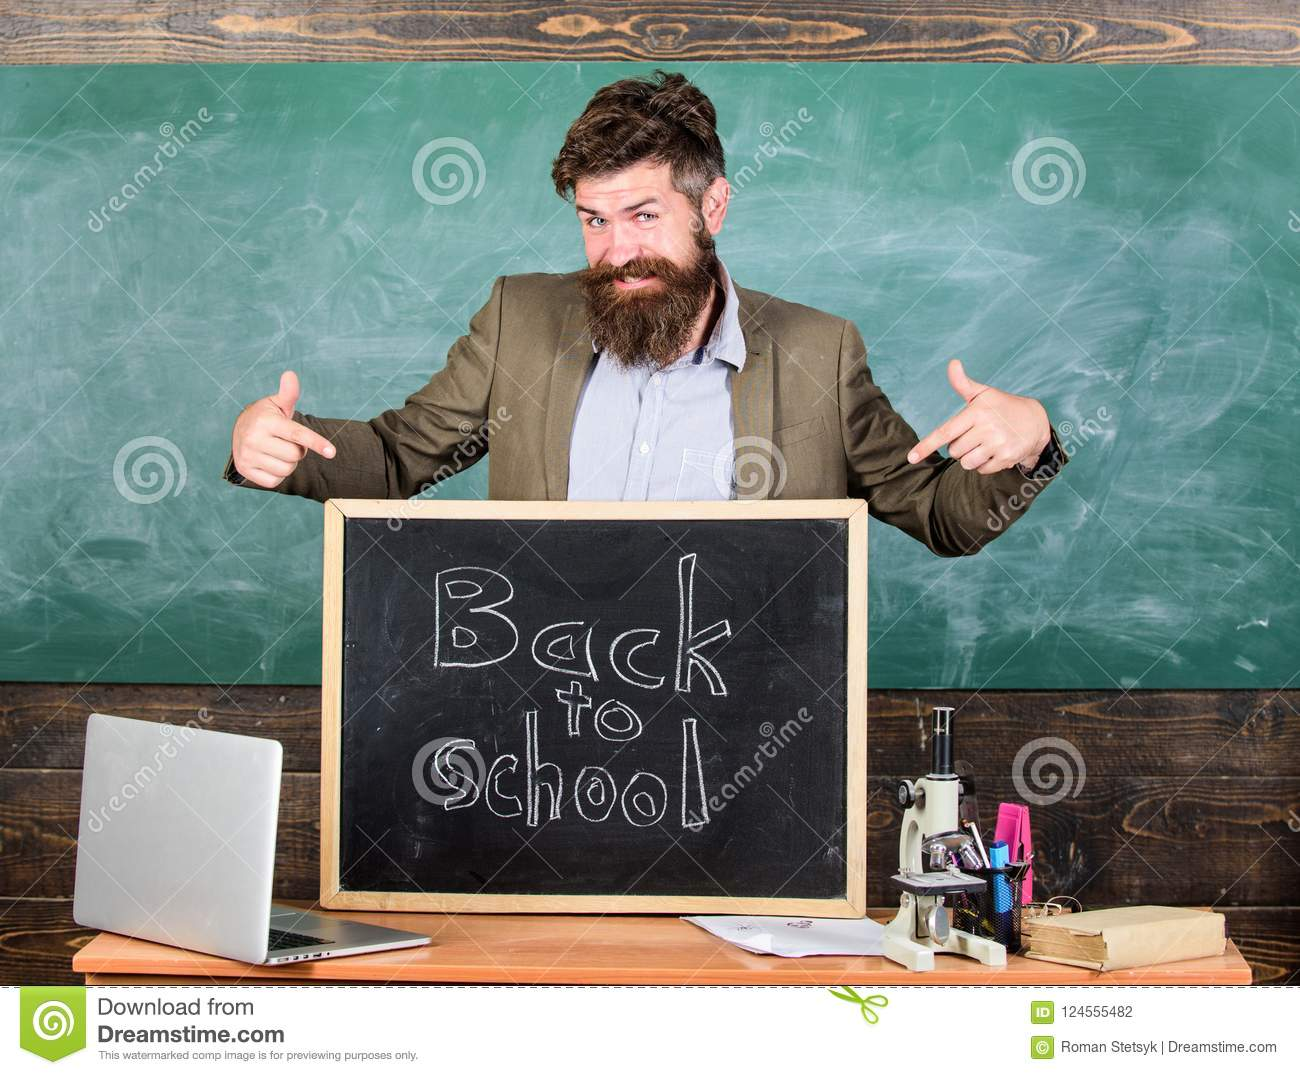 Teacher experienced educator welcomes new enrollees to begin study and get education. Welcome back to school. Teacher or